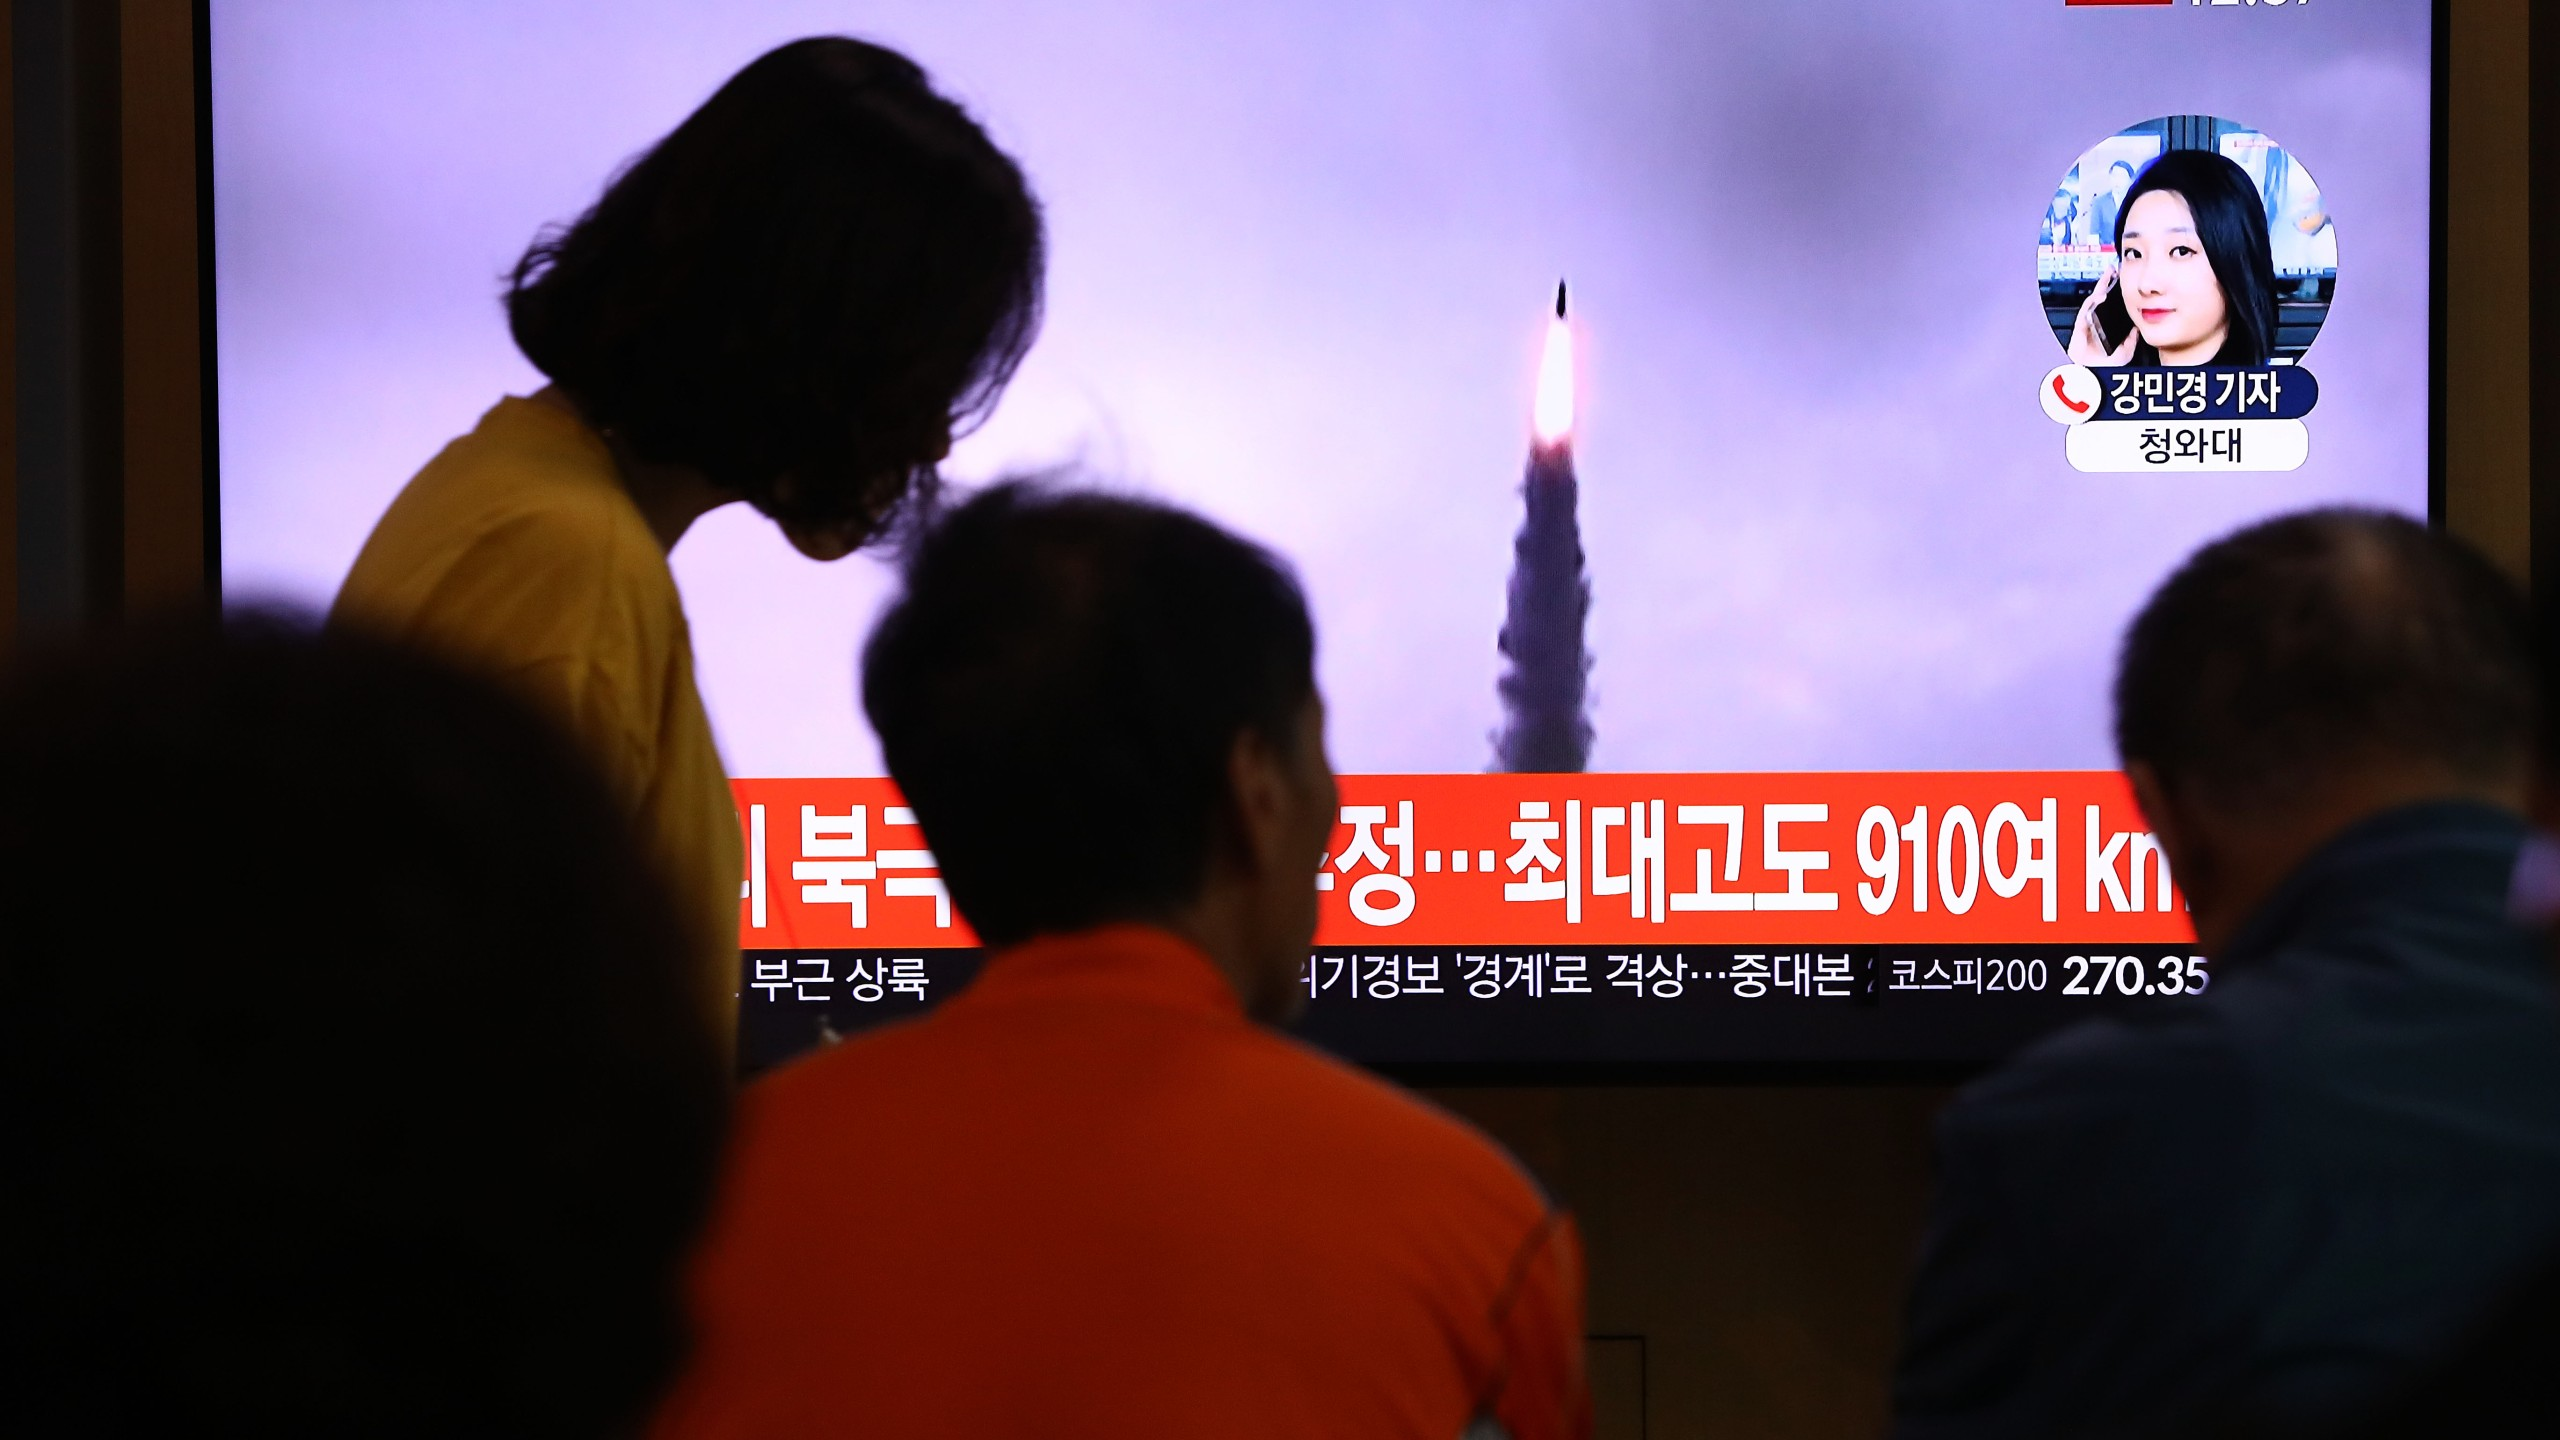 People watch a TV showing a file image of a North Korean missile launch at the Seoul Railway Station on Oct. 2, 2019, in Seoul, South Korea. (Credit: Chung Sung-Jun/Getty Images)